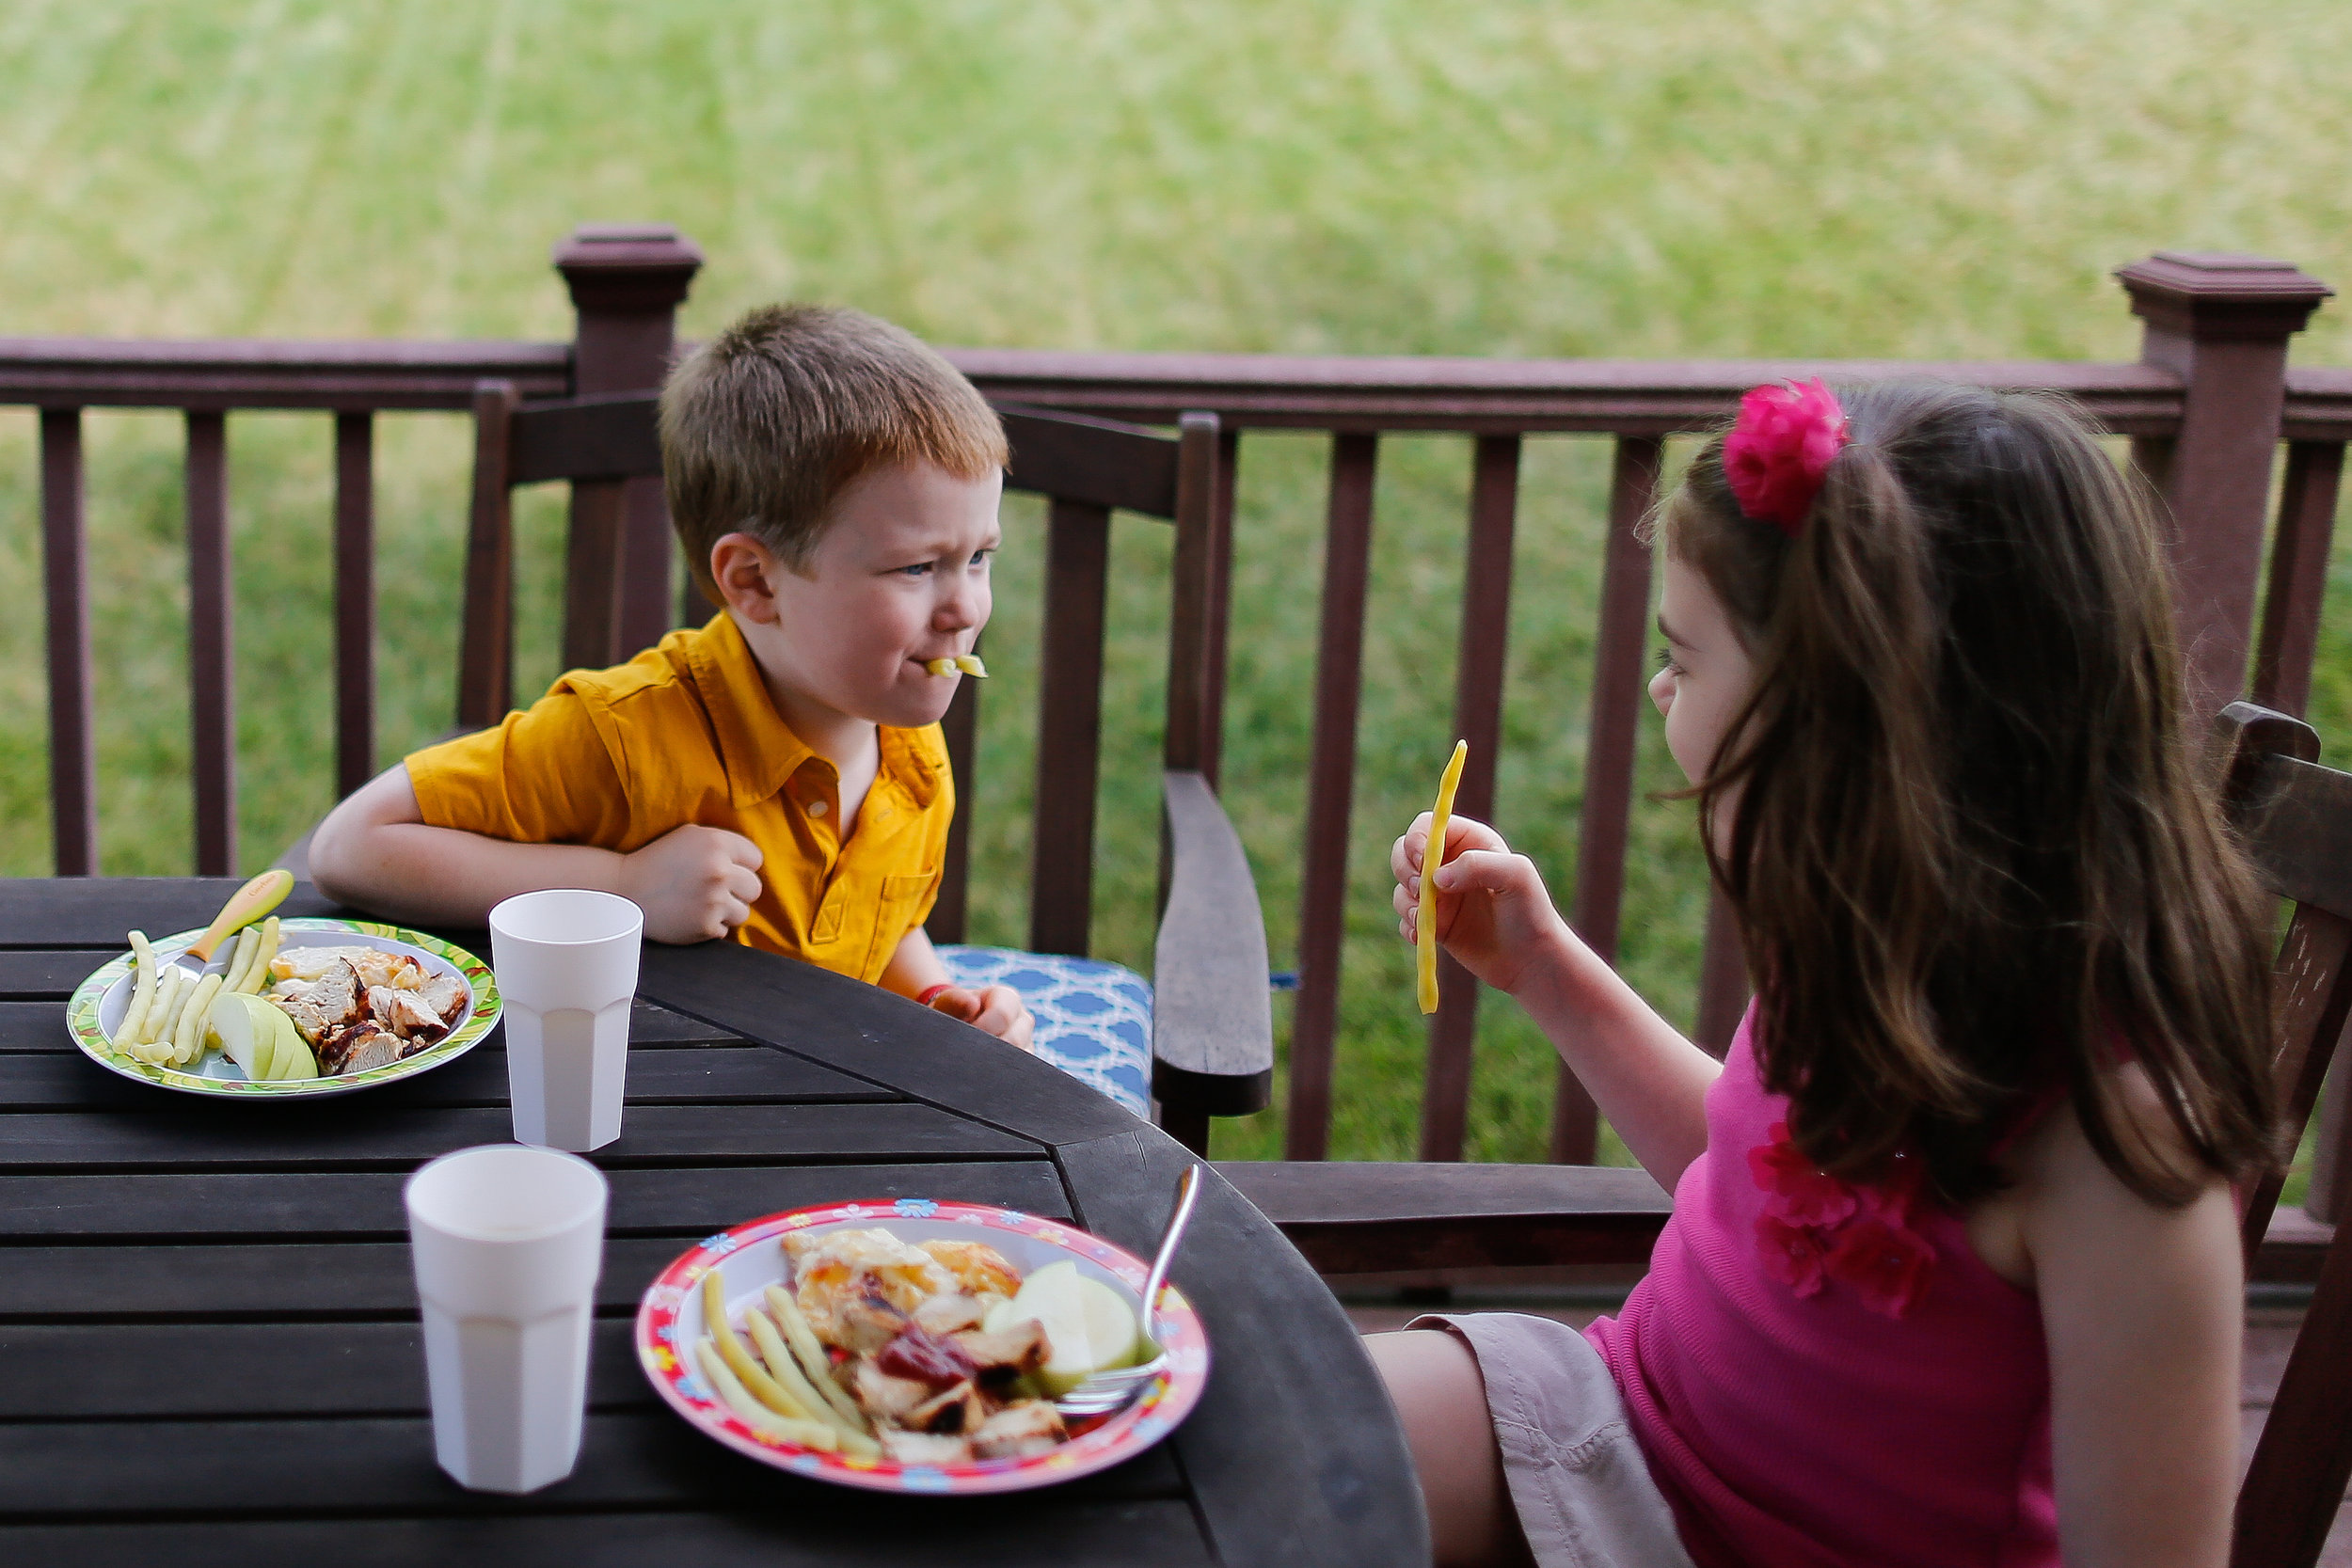 Evan Costik, 6, and his sister Sarah, 8, sit down for dinner on the patio.